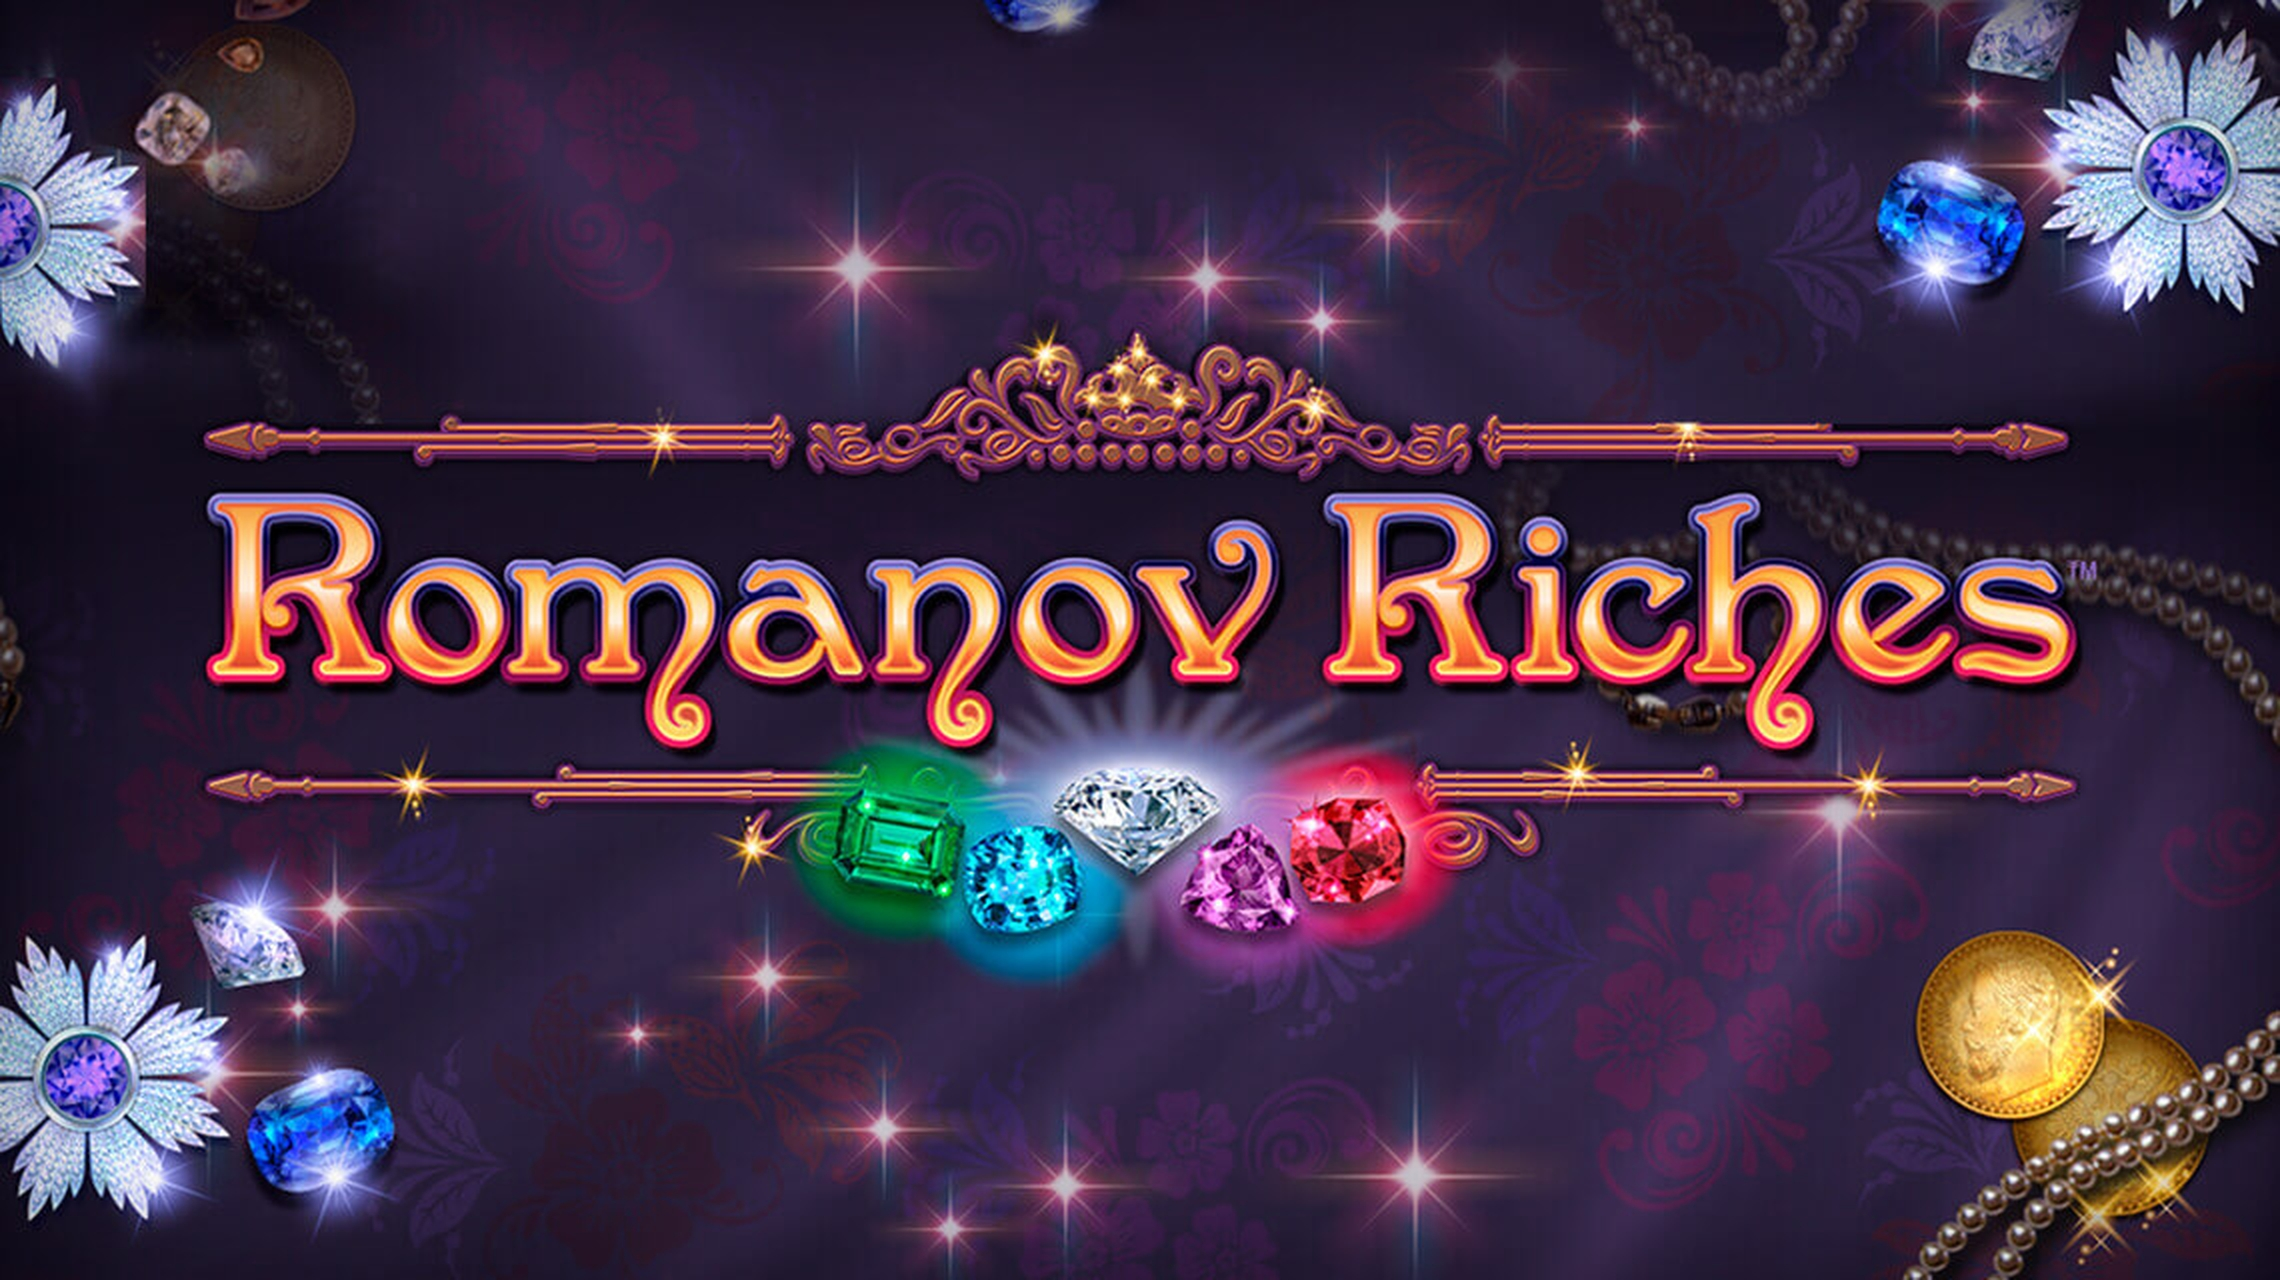 The Romanov Riches Online Slot Demo Game by Fortune Factory Studios